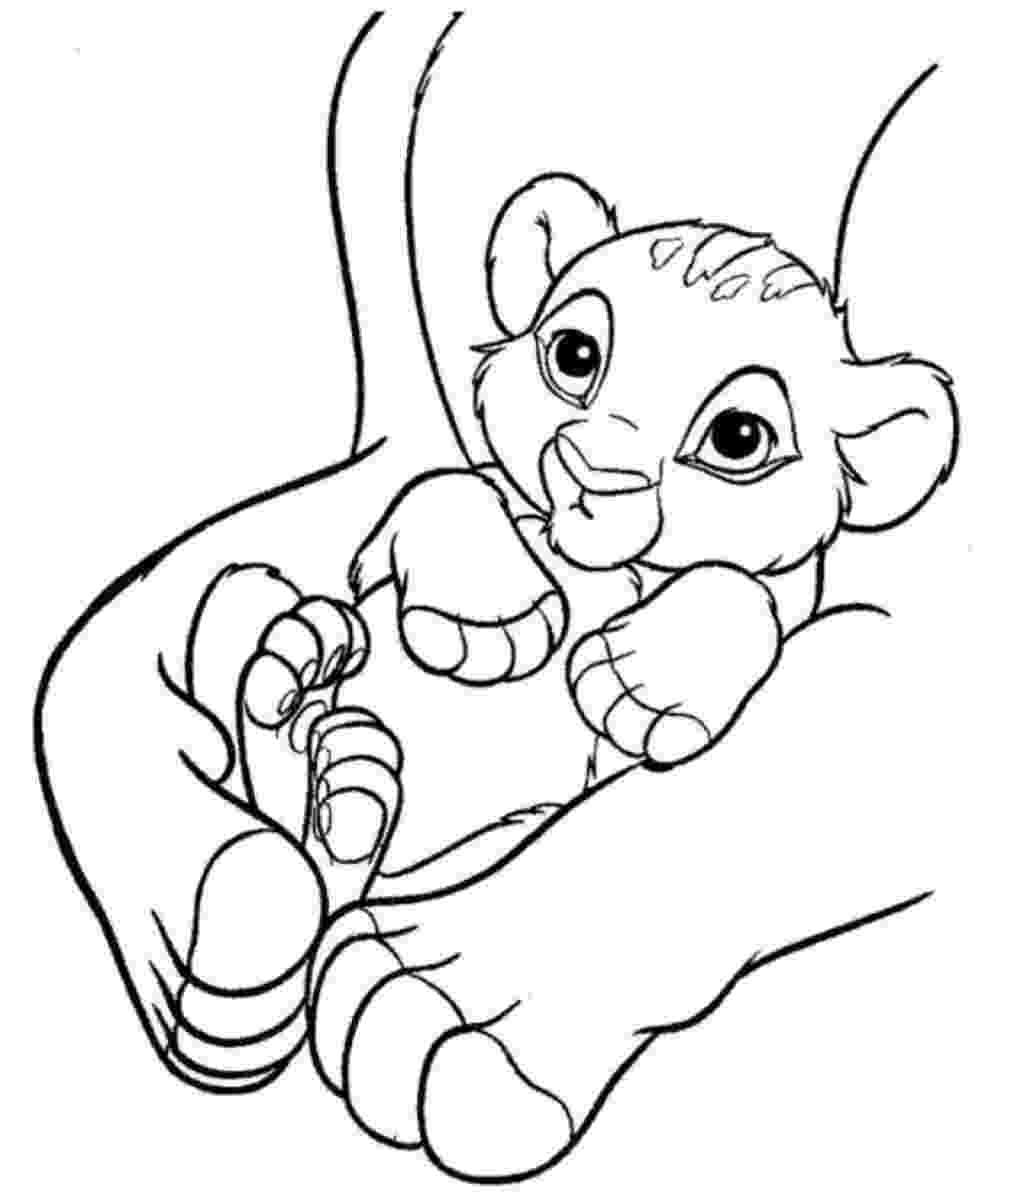 simba coloring page kids coloring pages free download kids online world blog simba coloring page